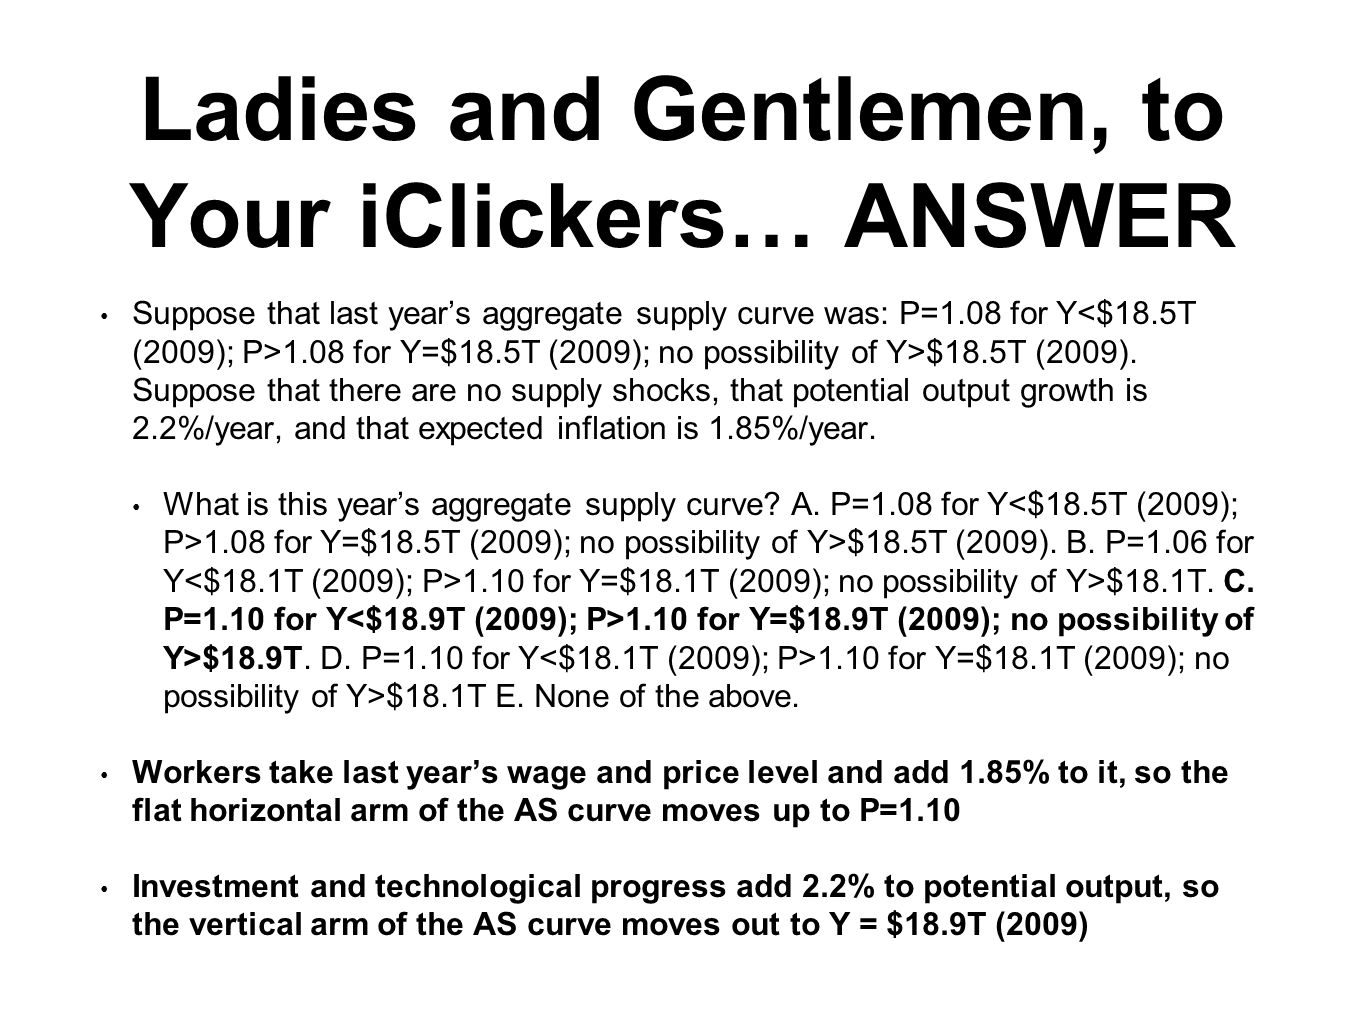 Ladies and Gentlemen, to Your iClickers… ANSWER Suppose that last year's aggregate supply curve was: P=1.08 for Y 1.08 for Y=$18.5T (2009); no possibi